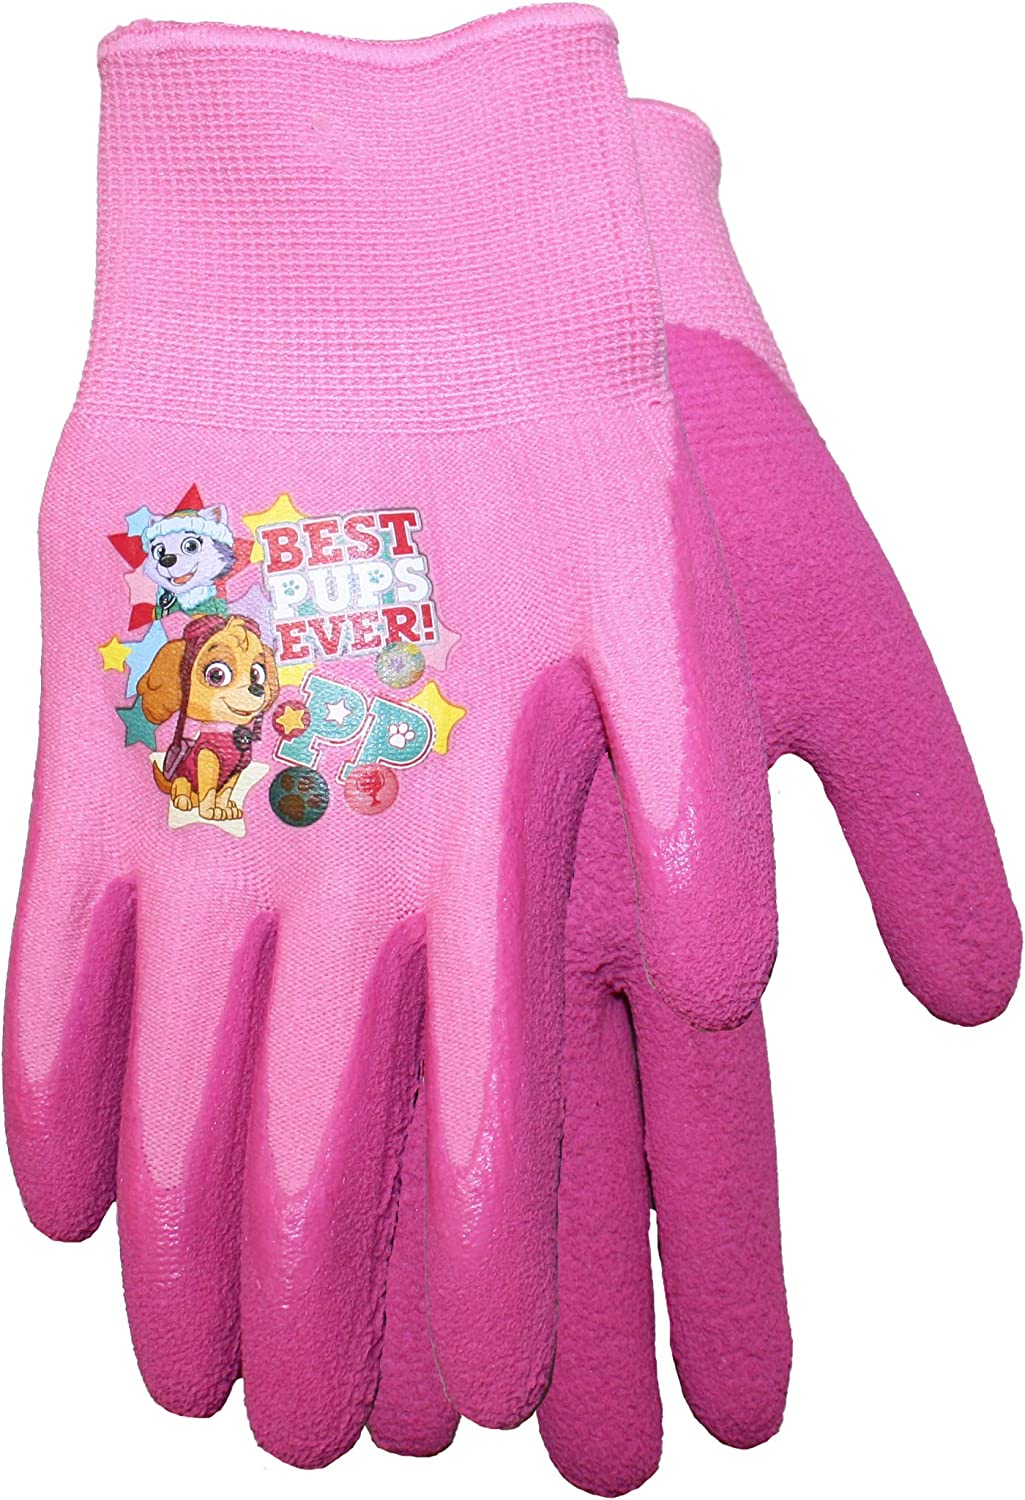 Midwest Gloves & Gear PWG100T-T-AZ-6 Gripper, PWG100T, Toddler, Pink Midwest Quality Gloves Nickelodeon Paw Patrol Girls Kids Garden Grippe